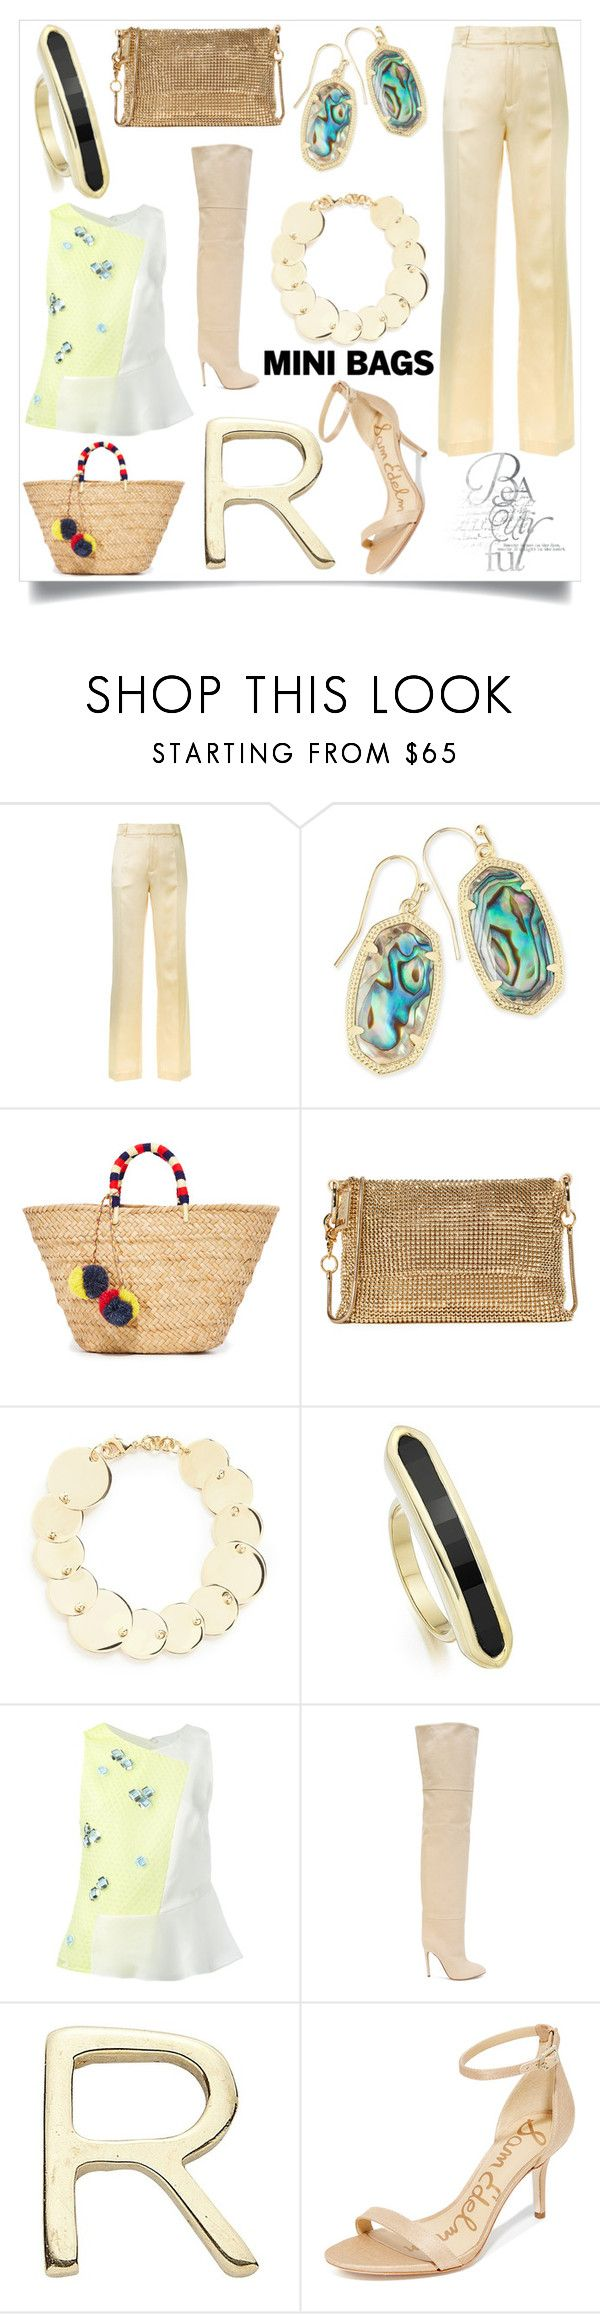 """""""Vanity is the healthiest"""" by emmamegan-5678 ❤ liked on Polyvore featuring Joseph, Kendra Scott, Kayu, Eddie Borgo, Monica Vinader, 3.1 Phillip Lim, Yeezy by Kanye West, Loquet, Sam Edelman and modern"""